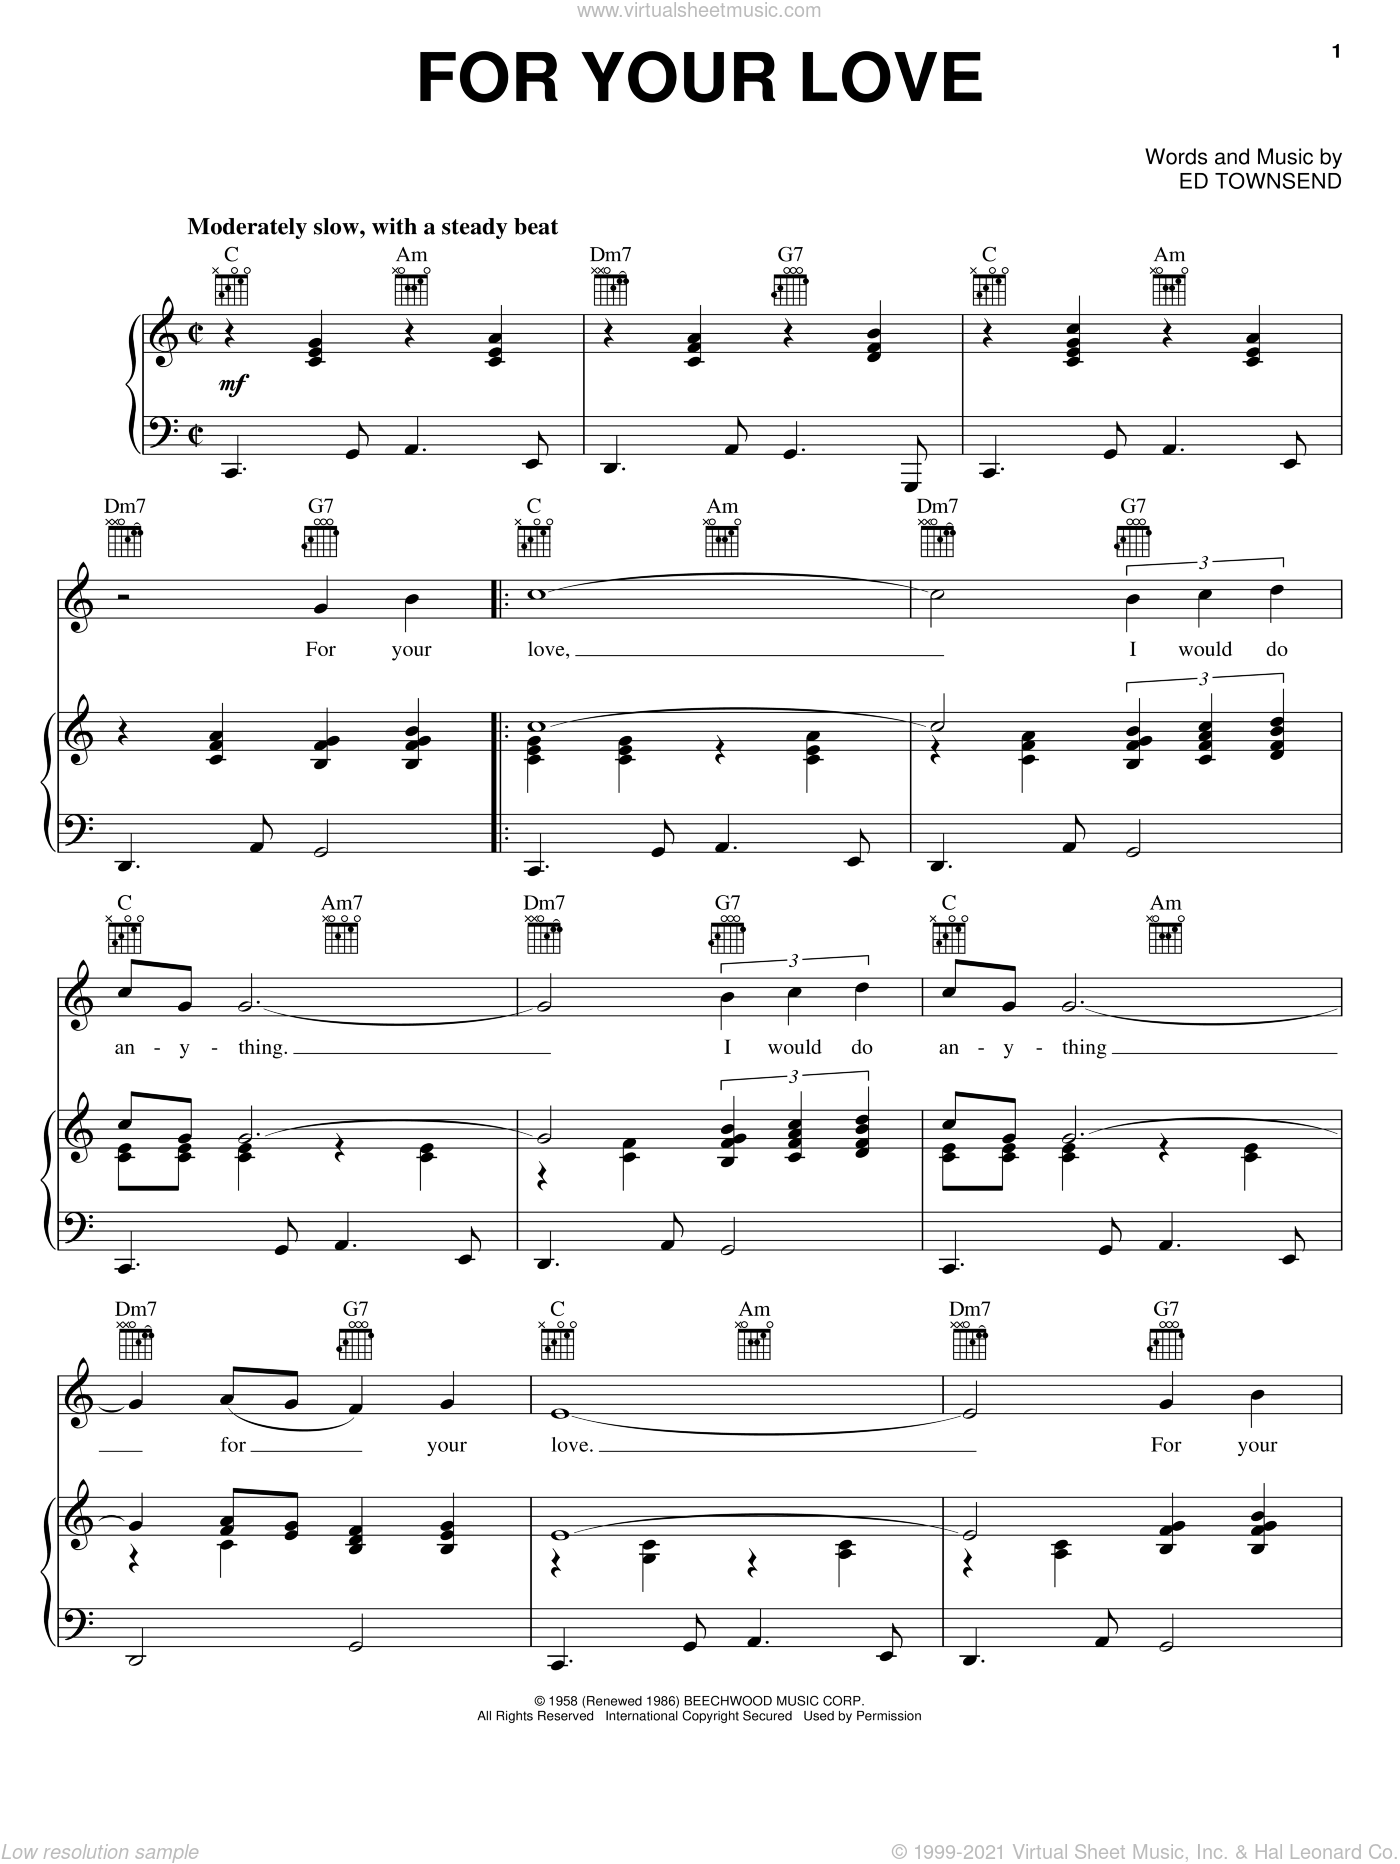 For Your Love sheet music for voice, piano or guitar by Ed Townsend, Gwen McCrae and Peaches & Herb, intermediate. Score Image Preview.